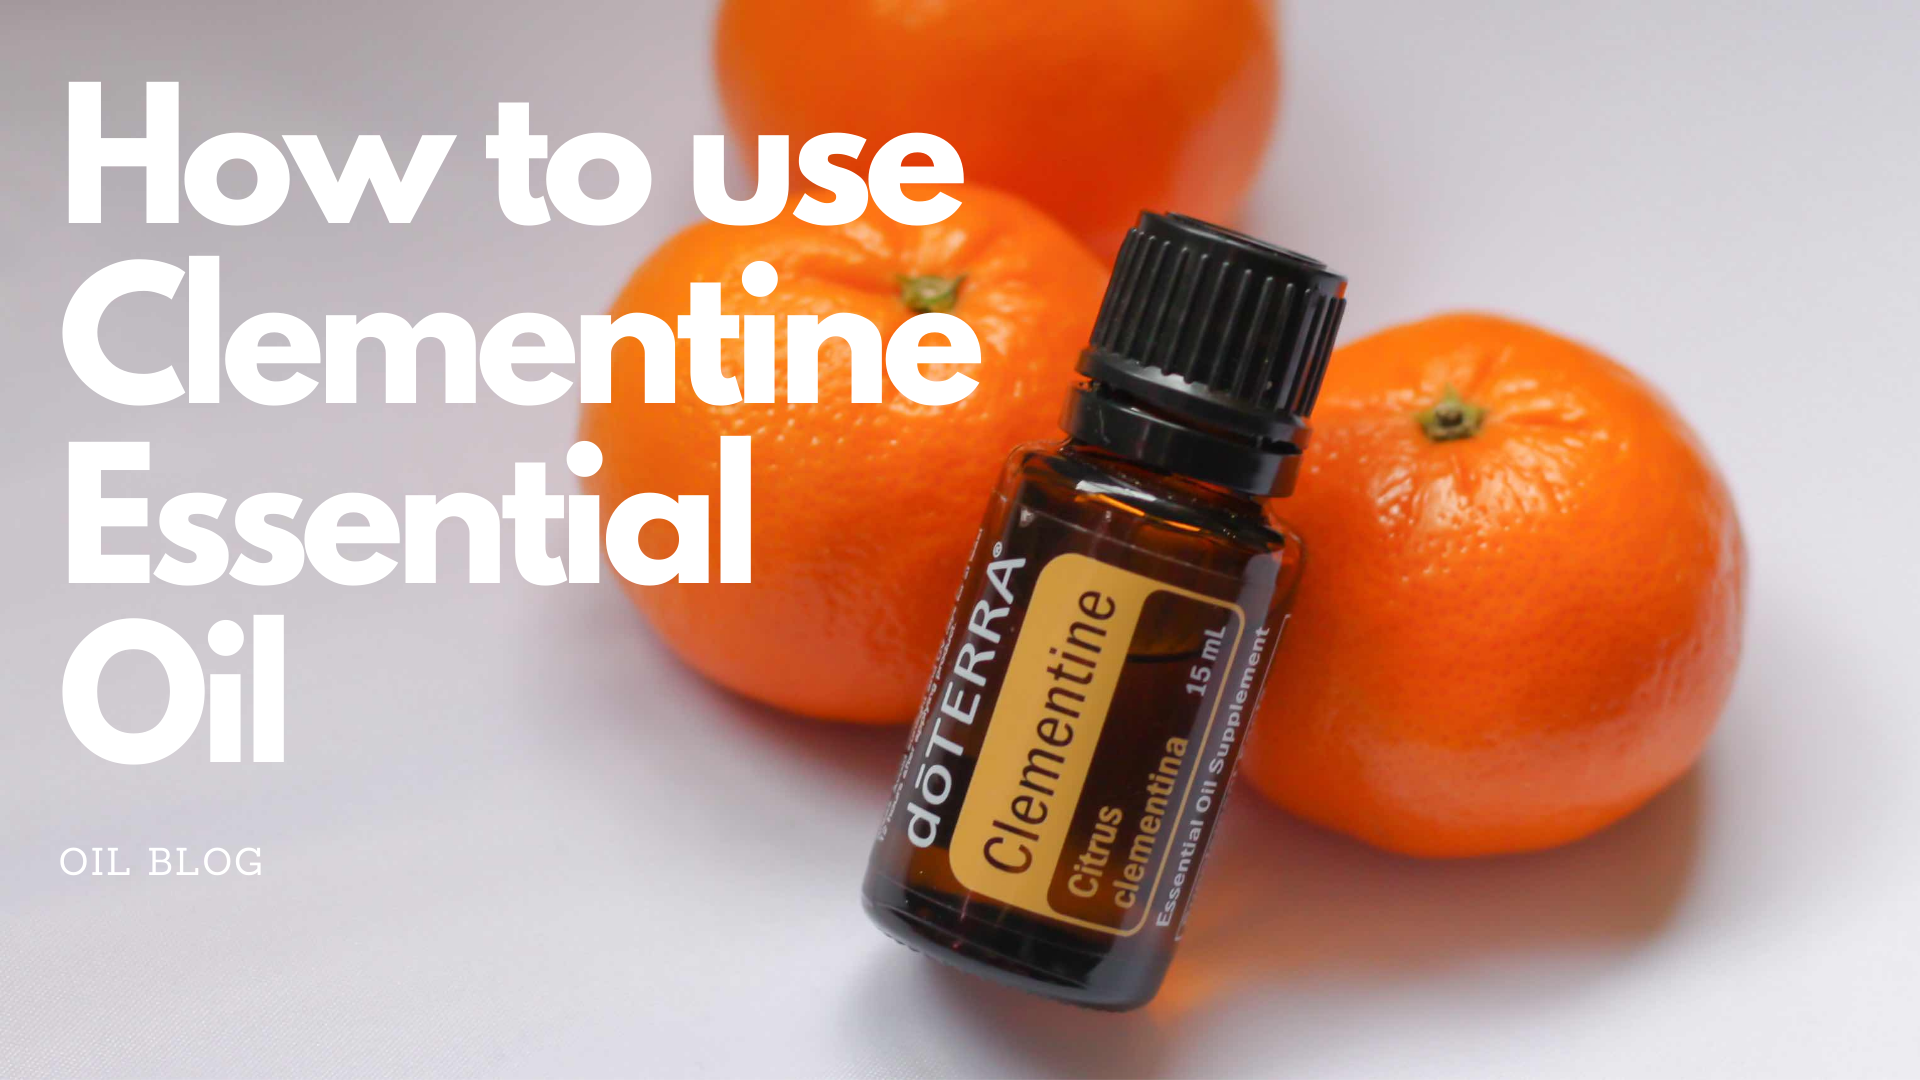 How to Use Clementine Essential Oil